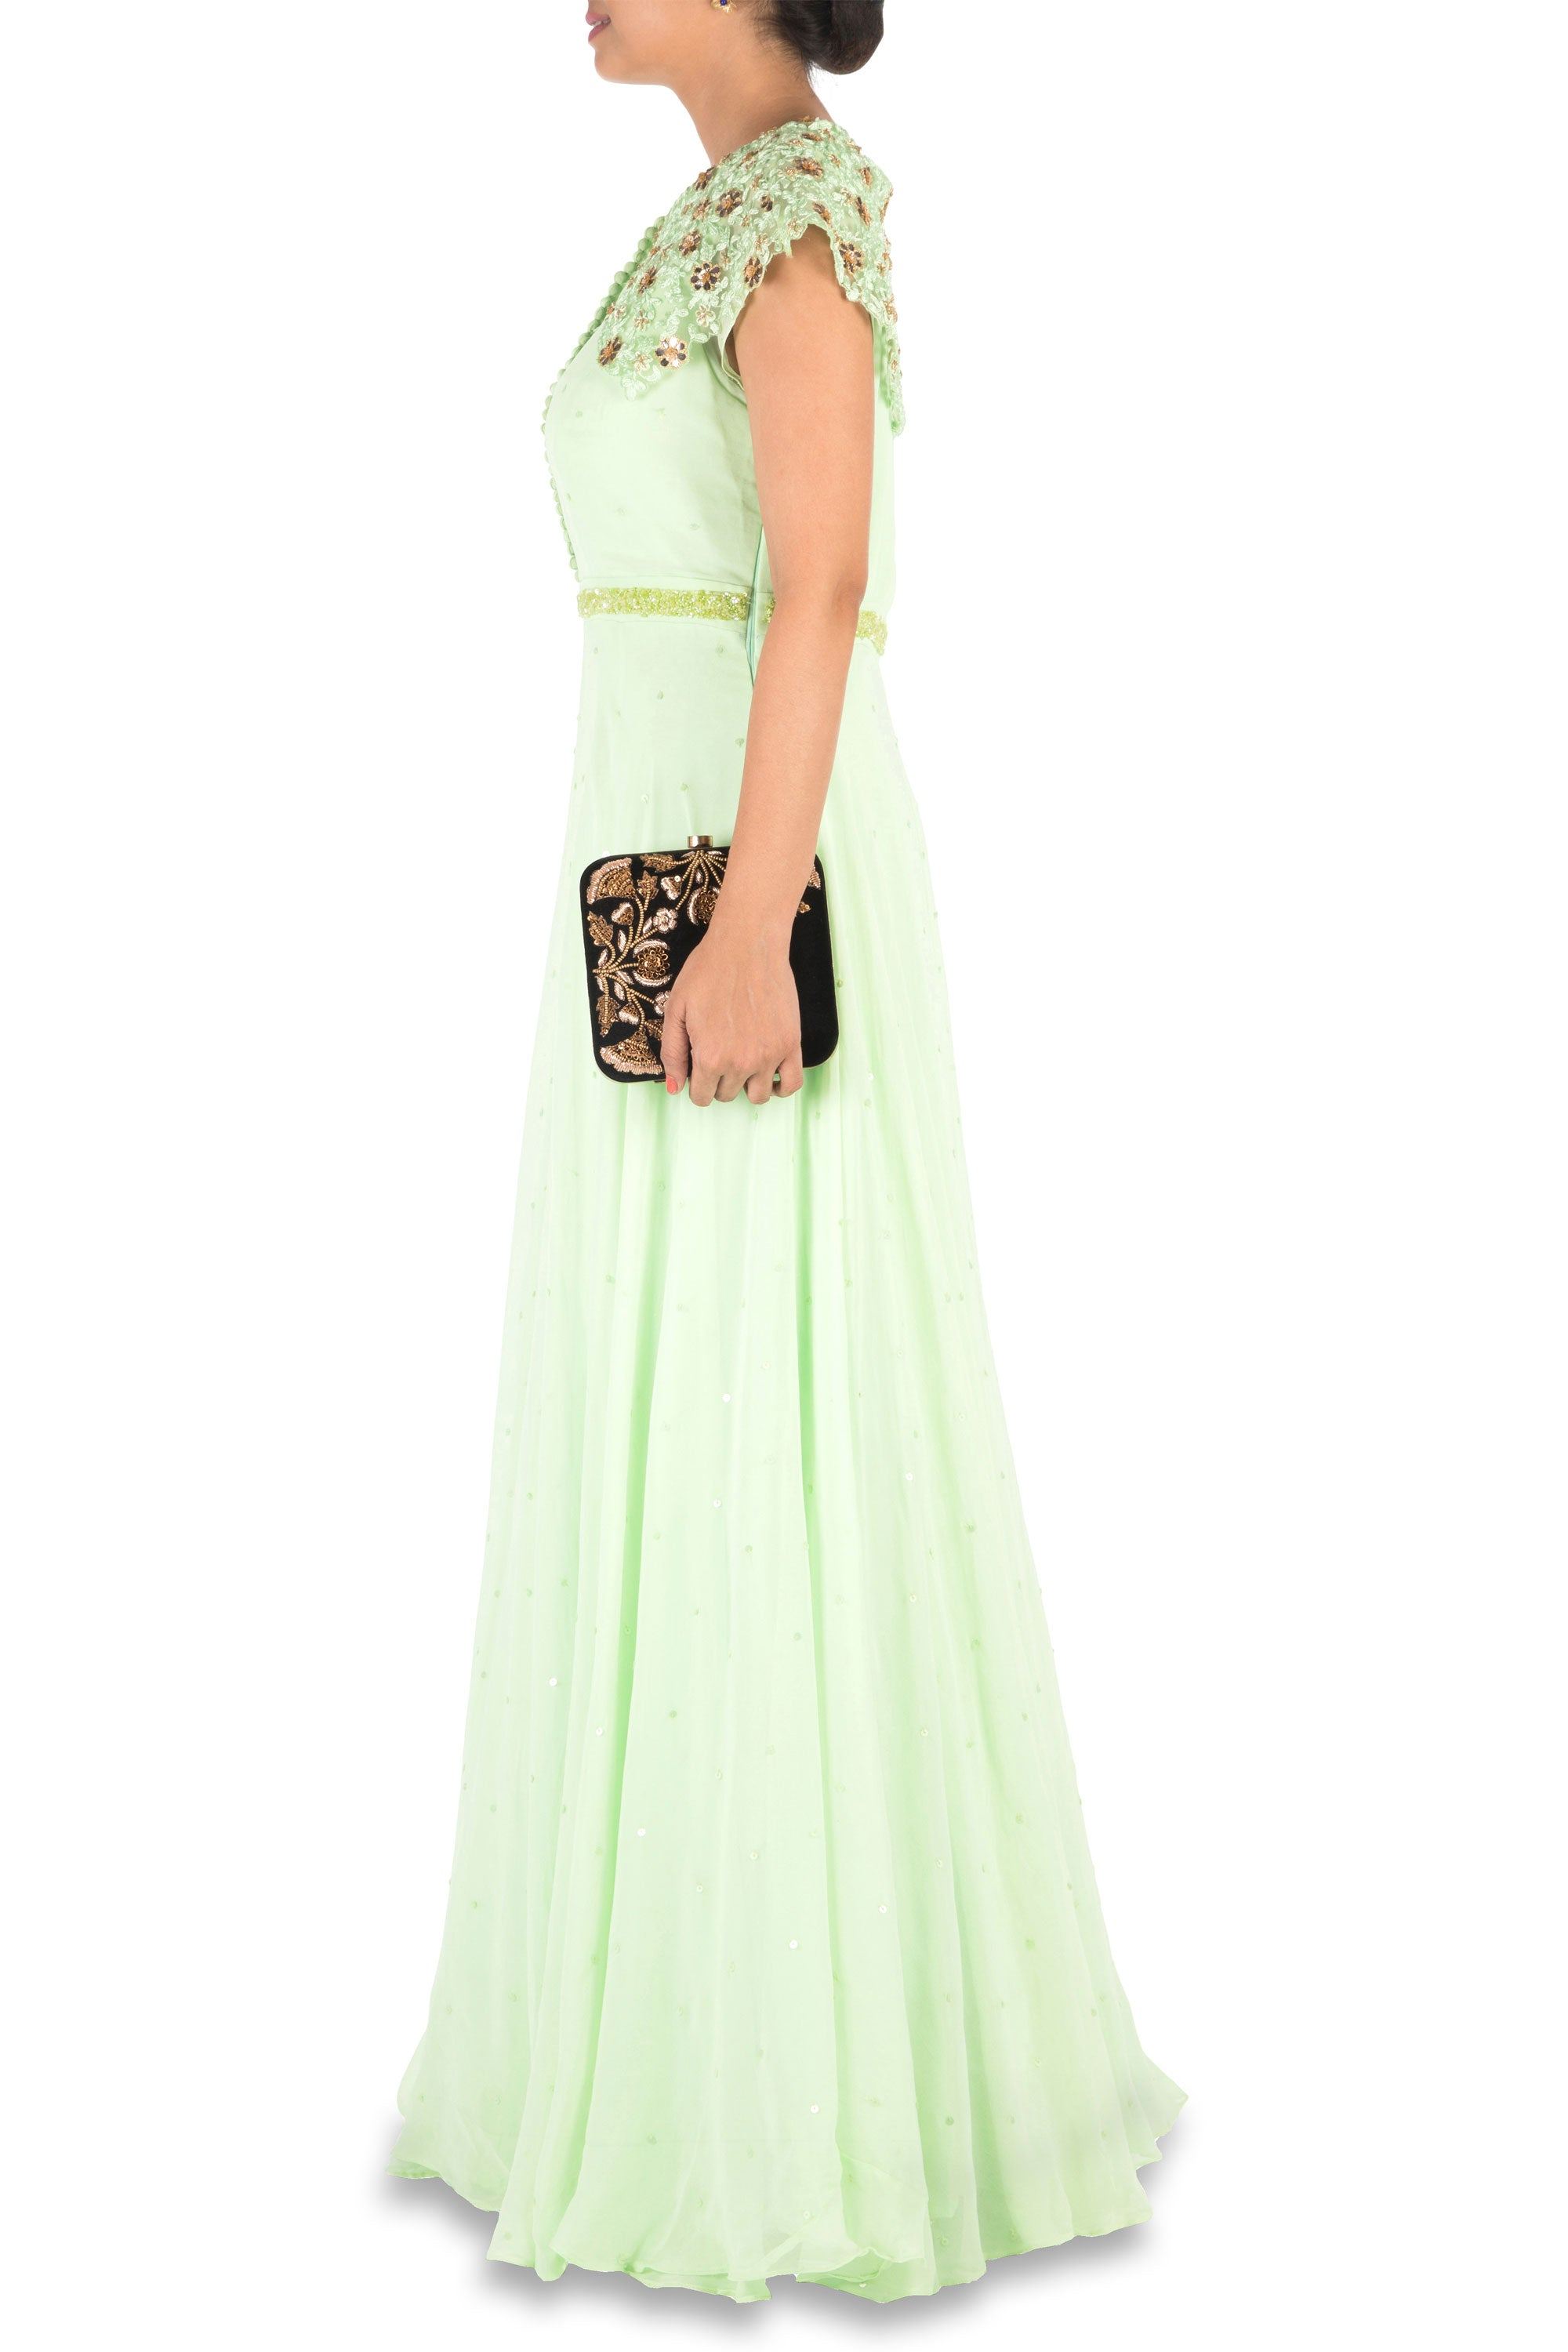 Hand Embroidered Mint Green Gown Side